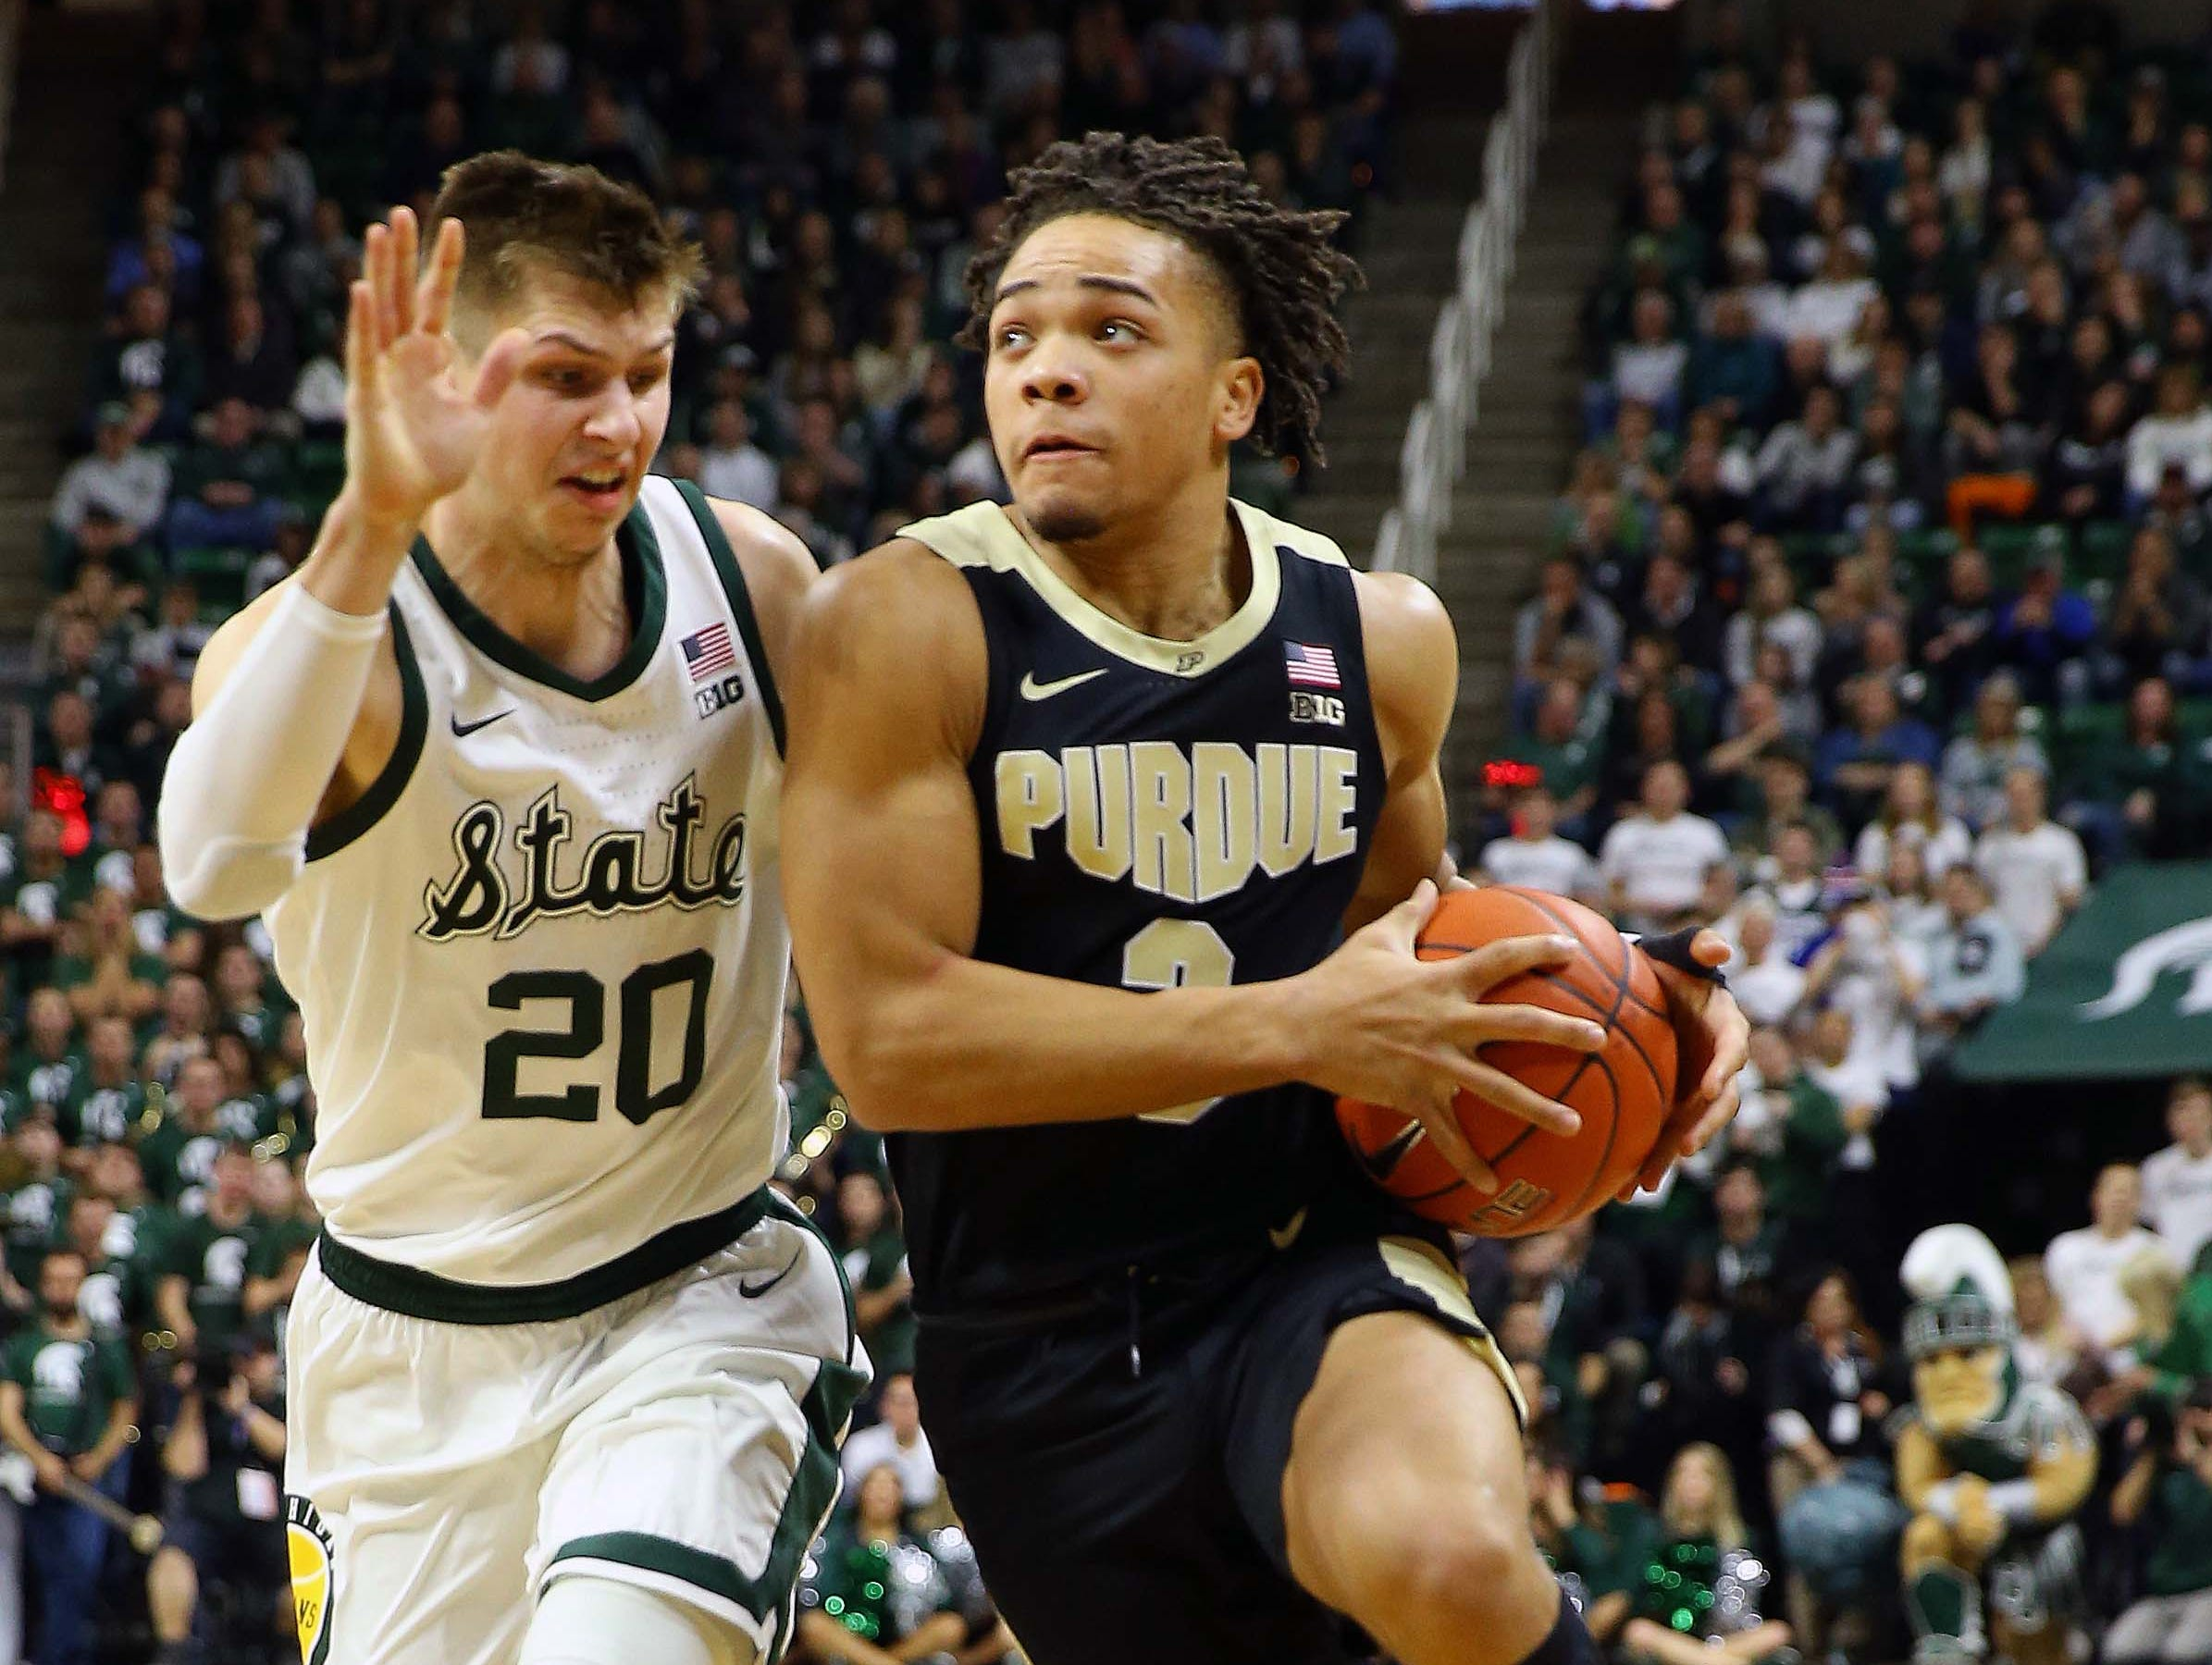 Jan 8, 2019; East Lansing, MI, USA; Purdue Boilermakers guard Carsen Edwards (3) is defended by Michigan State Spartans guard Matt McQuaid (20) during the first half of a game at the Breslin Center. Mandatory Credit: Mike Carter-USA TODAY Sports